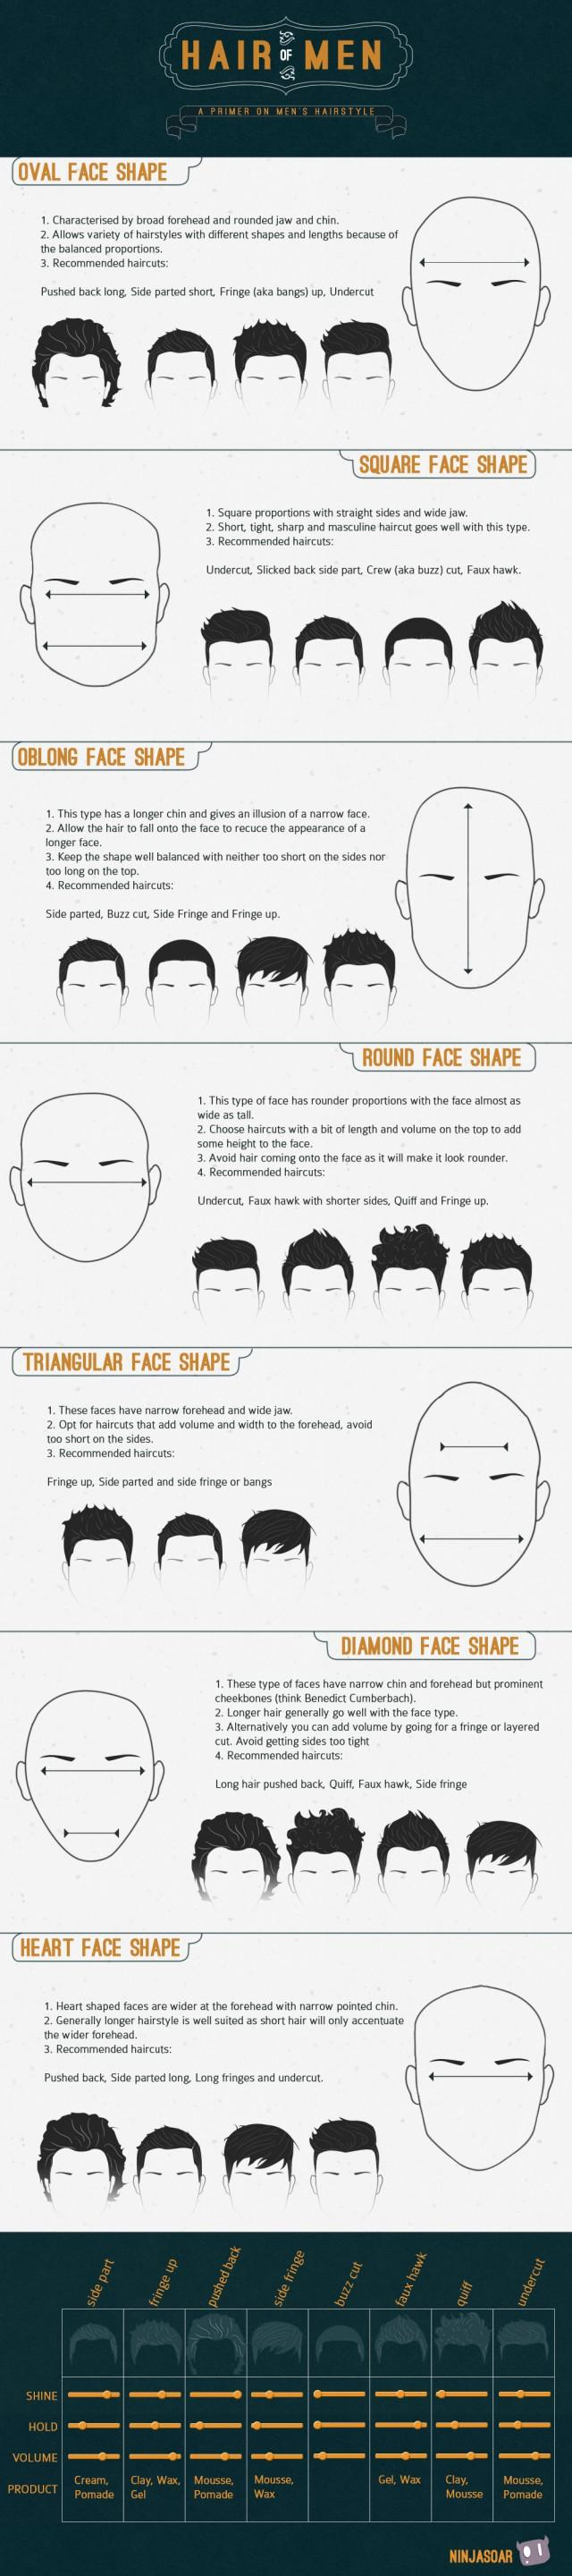 Hair Of Men - A Primer On Men's Hairstyle